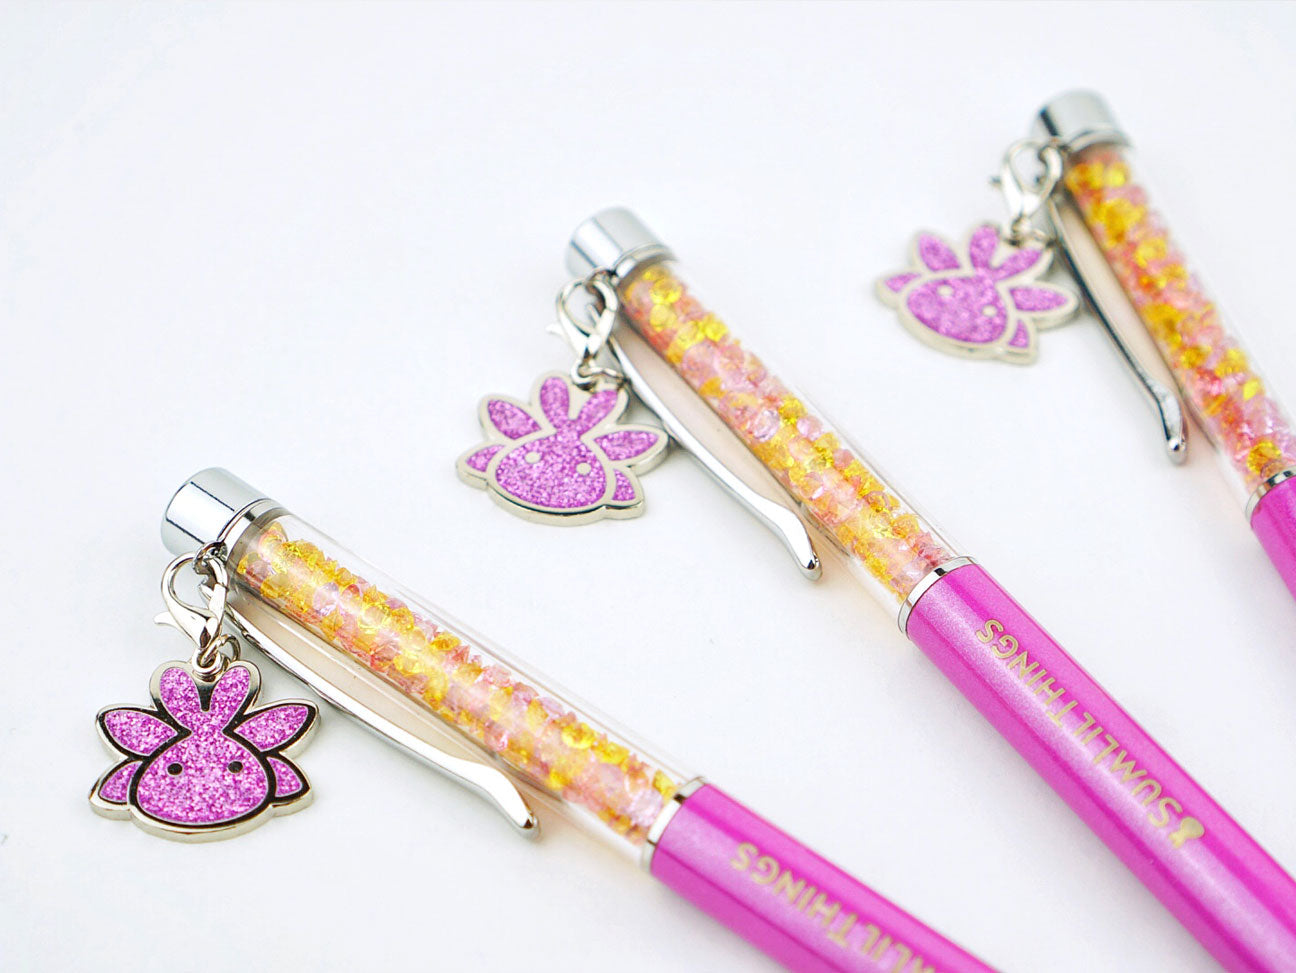 January Fairy Forest Stardust Pen with Charm